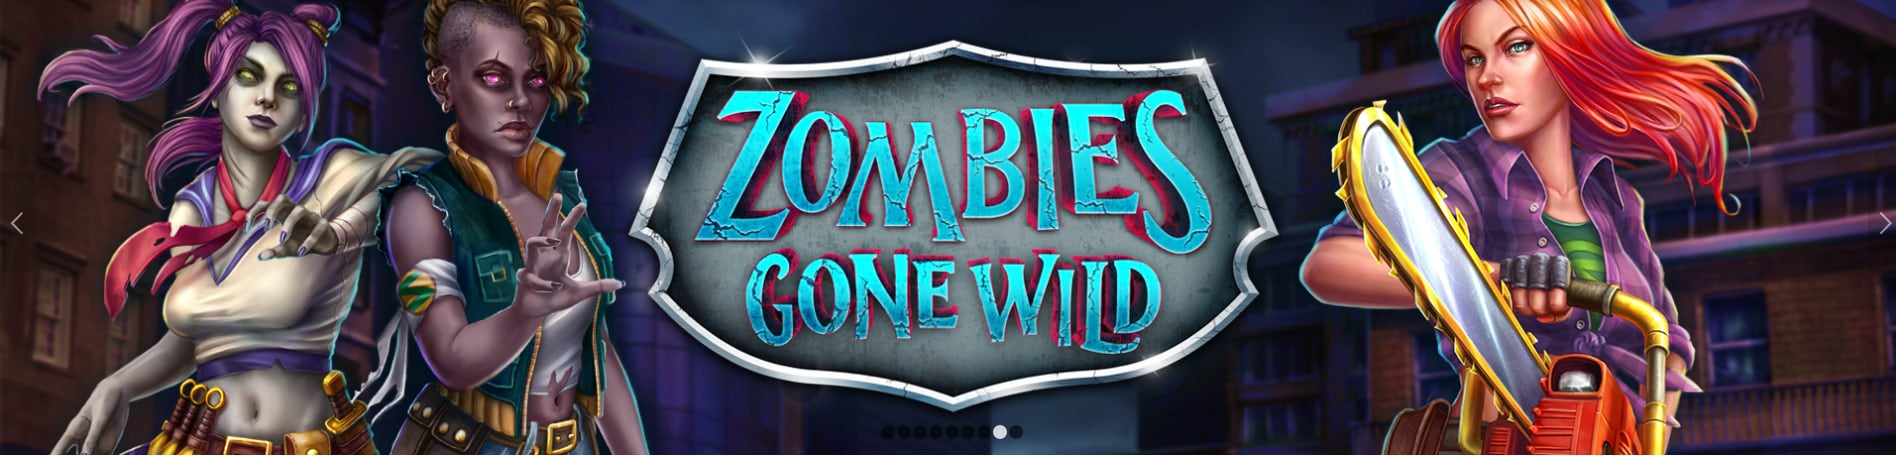 Zombies Gone Wild Screen